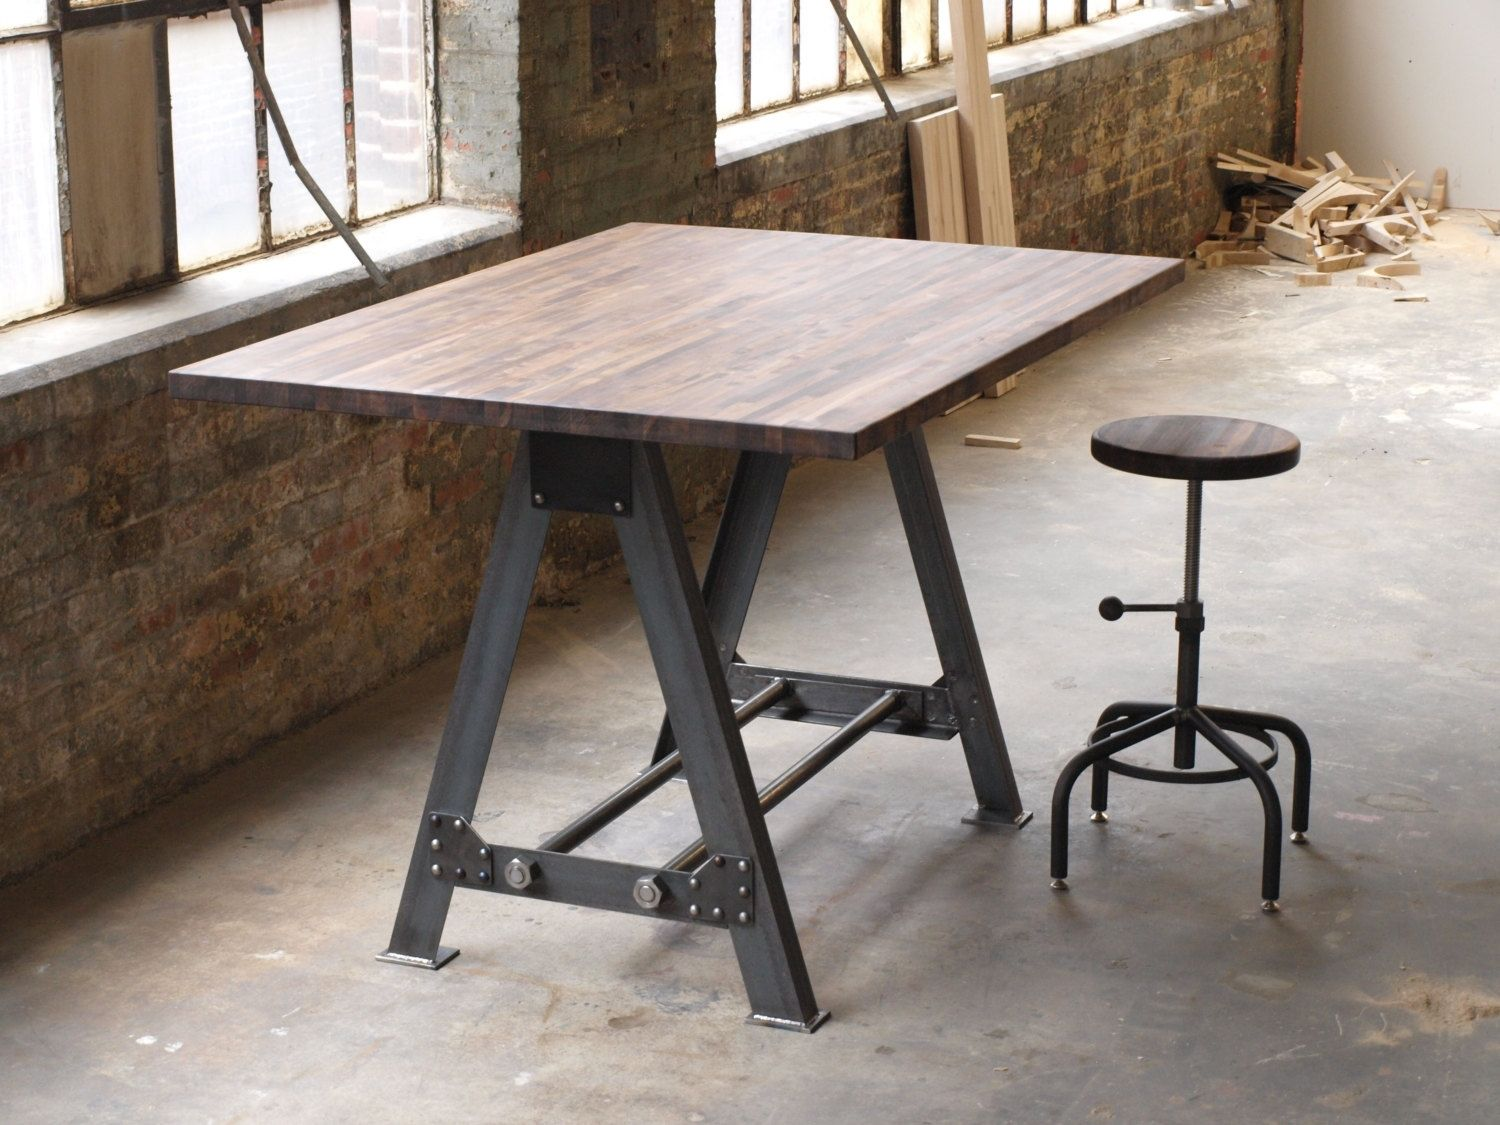 Hand made industrial a frame table kitchen island bar by - Table bar industriel ...